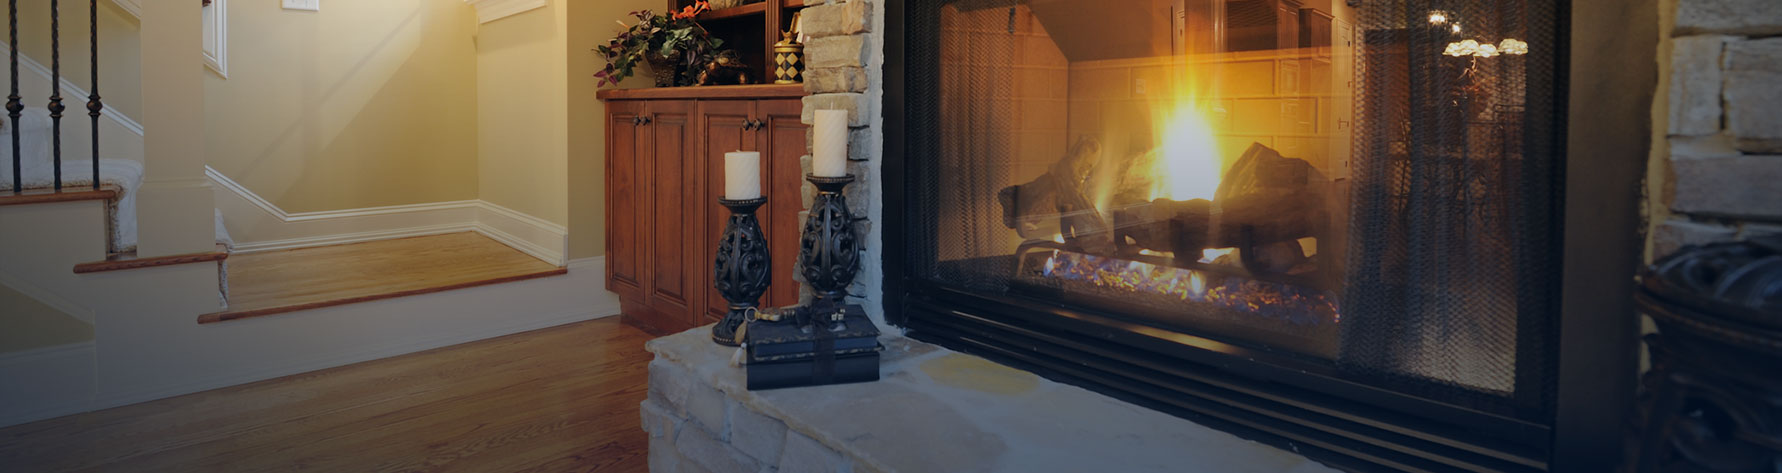 Fireplace | Stove | Heater